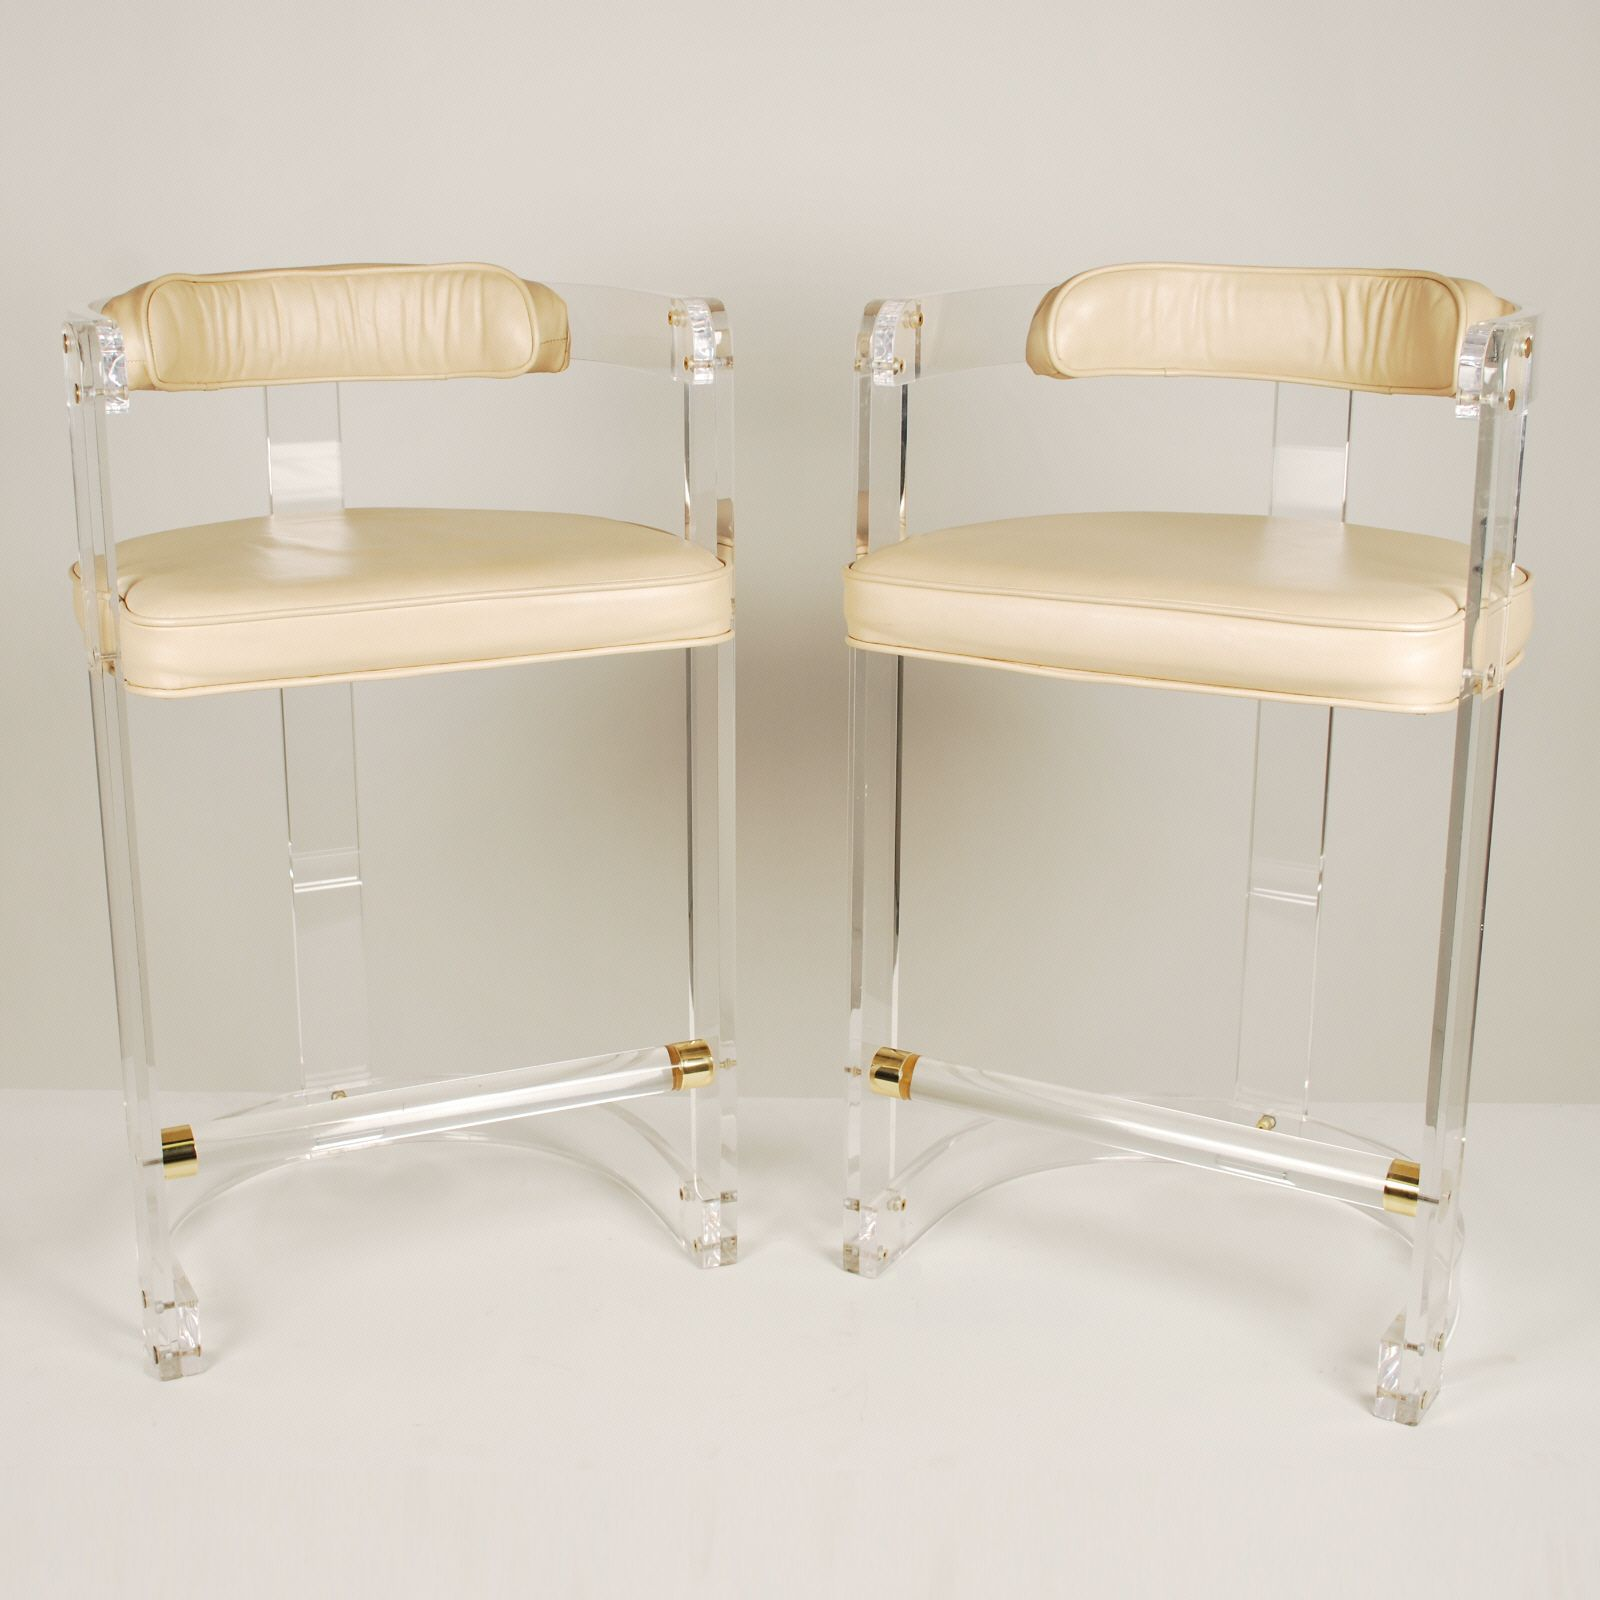 2019 vintage lucite bar stools modern home furniture check more at http